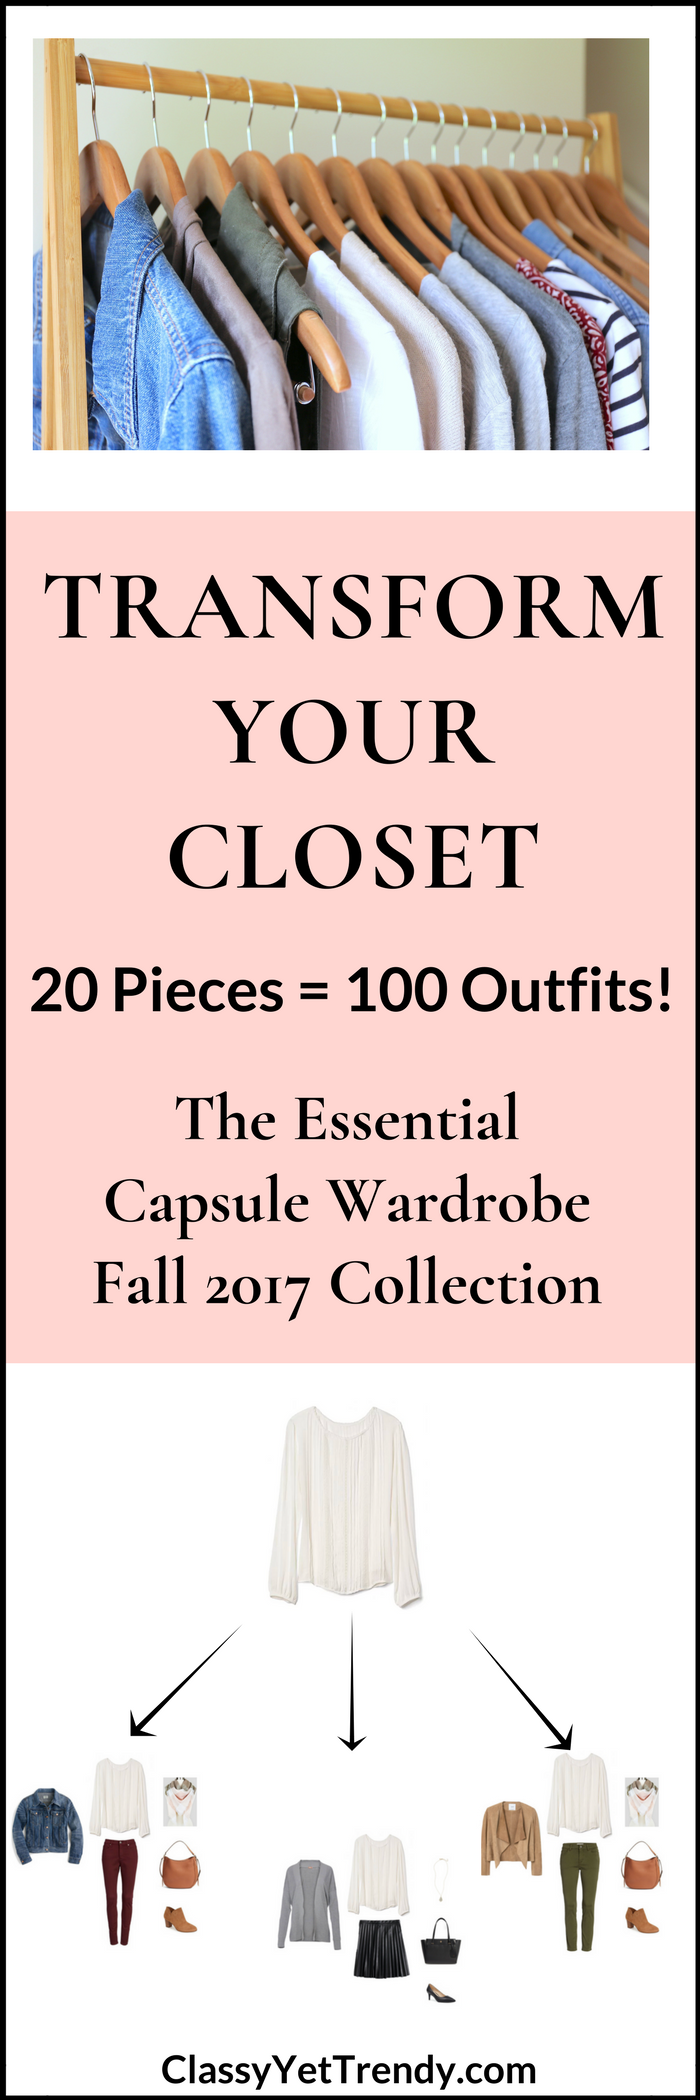 The Essential Capsule Wardrobe: Fall 2017 Collection